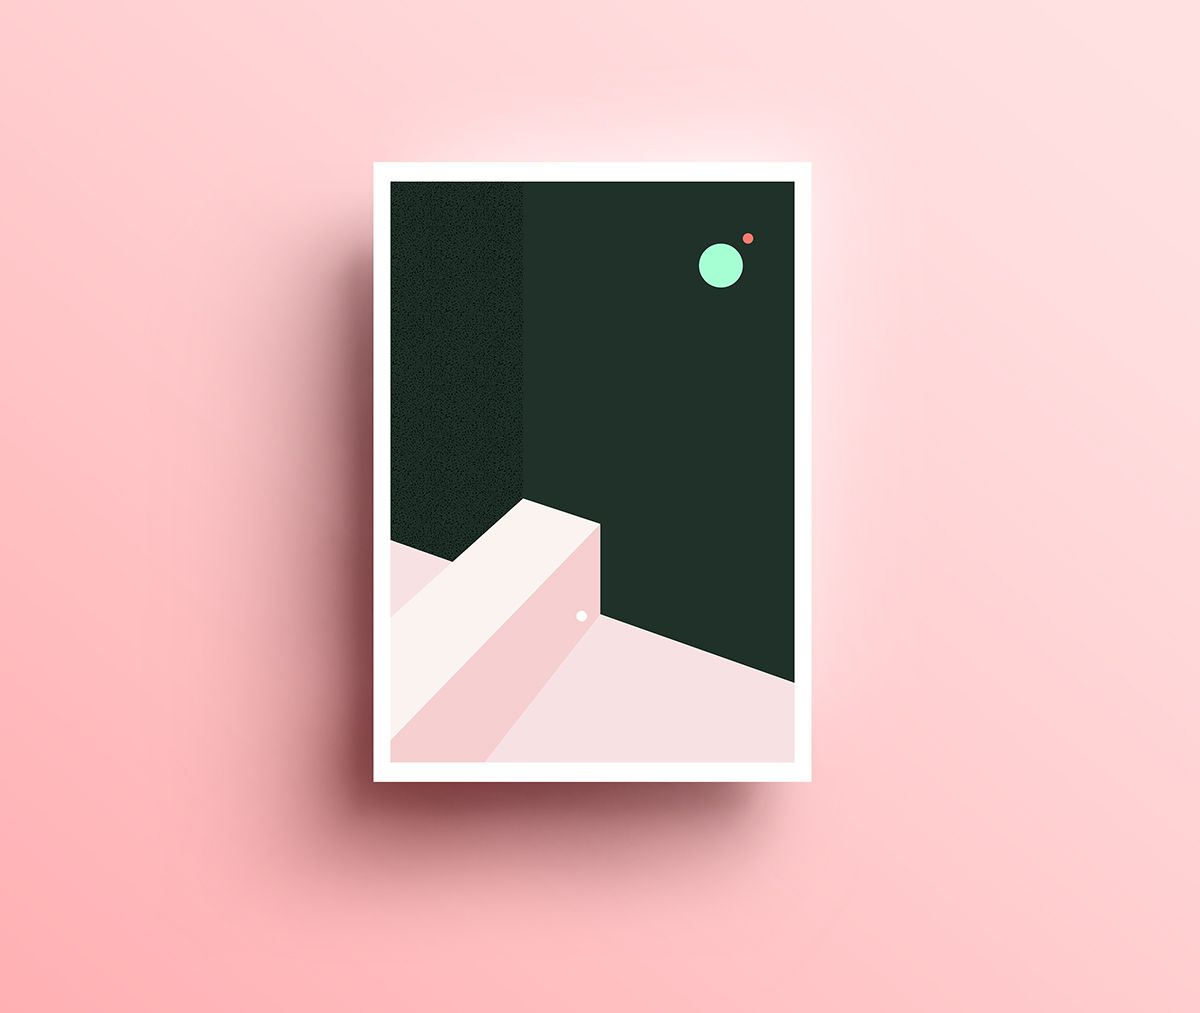 #graphicdesign #layout #inspiration #geometry #abduzeedo #design #modular #trends #patterns #shapes #basic #simple #colors #tutorial #PSD #designaday  A Geometry a Day | Abduzeedo Design Inspiration